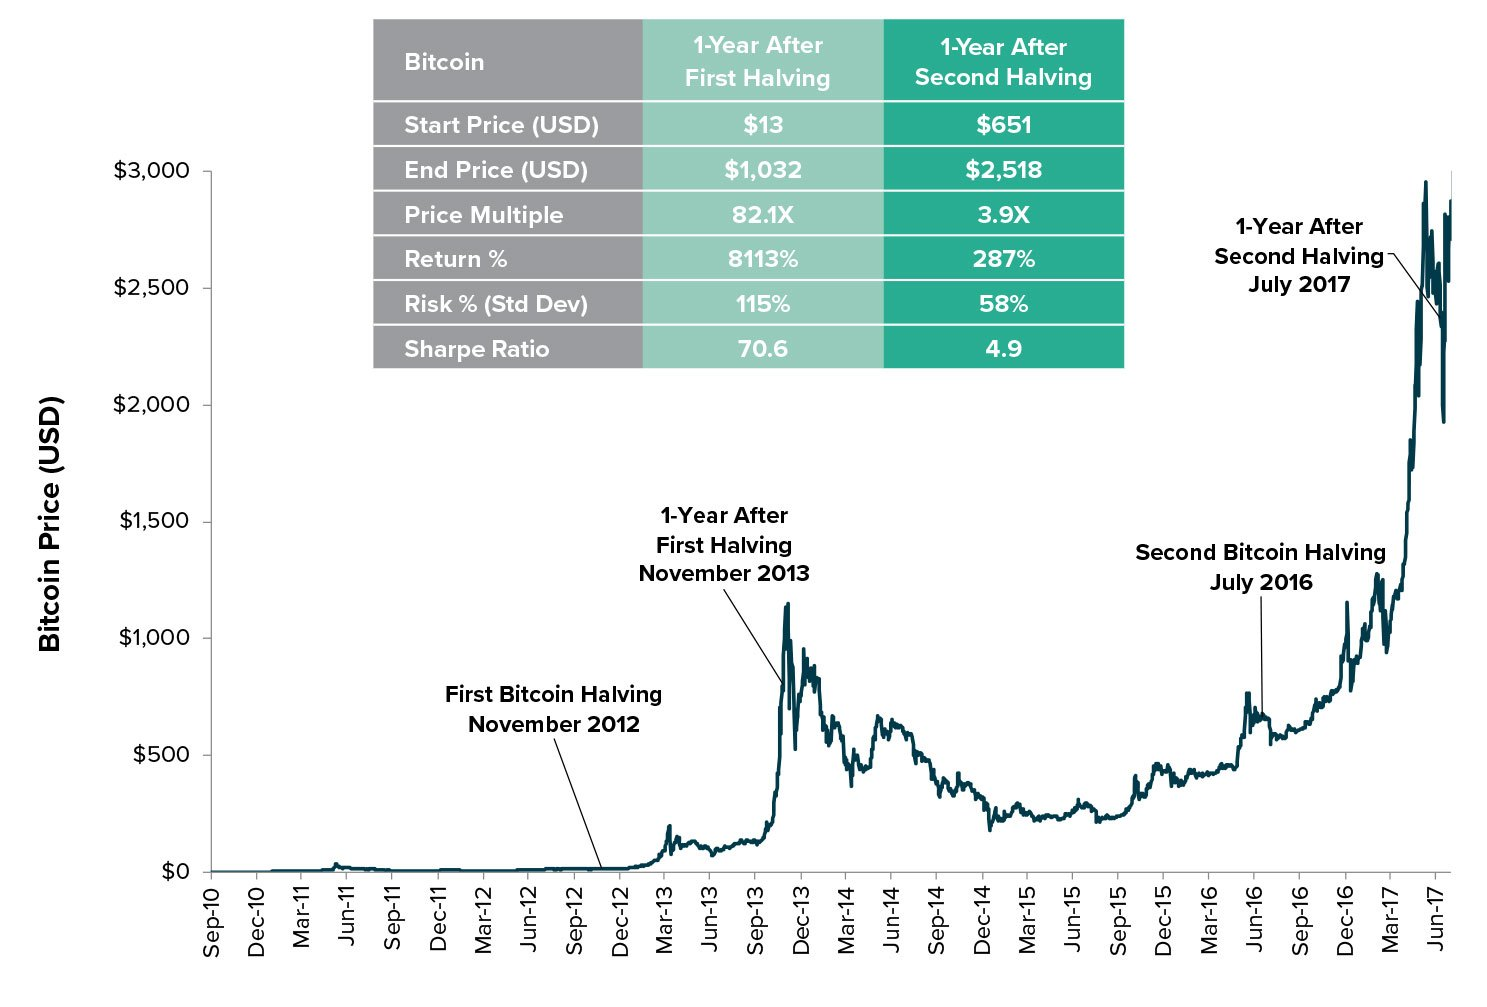 The bitcoin price has consistently recovered